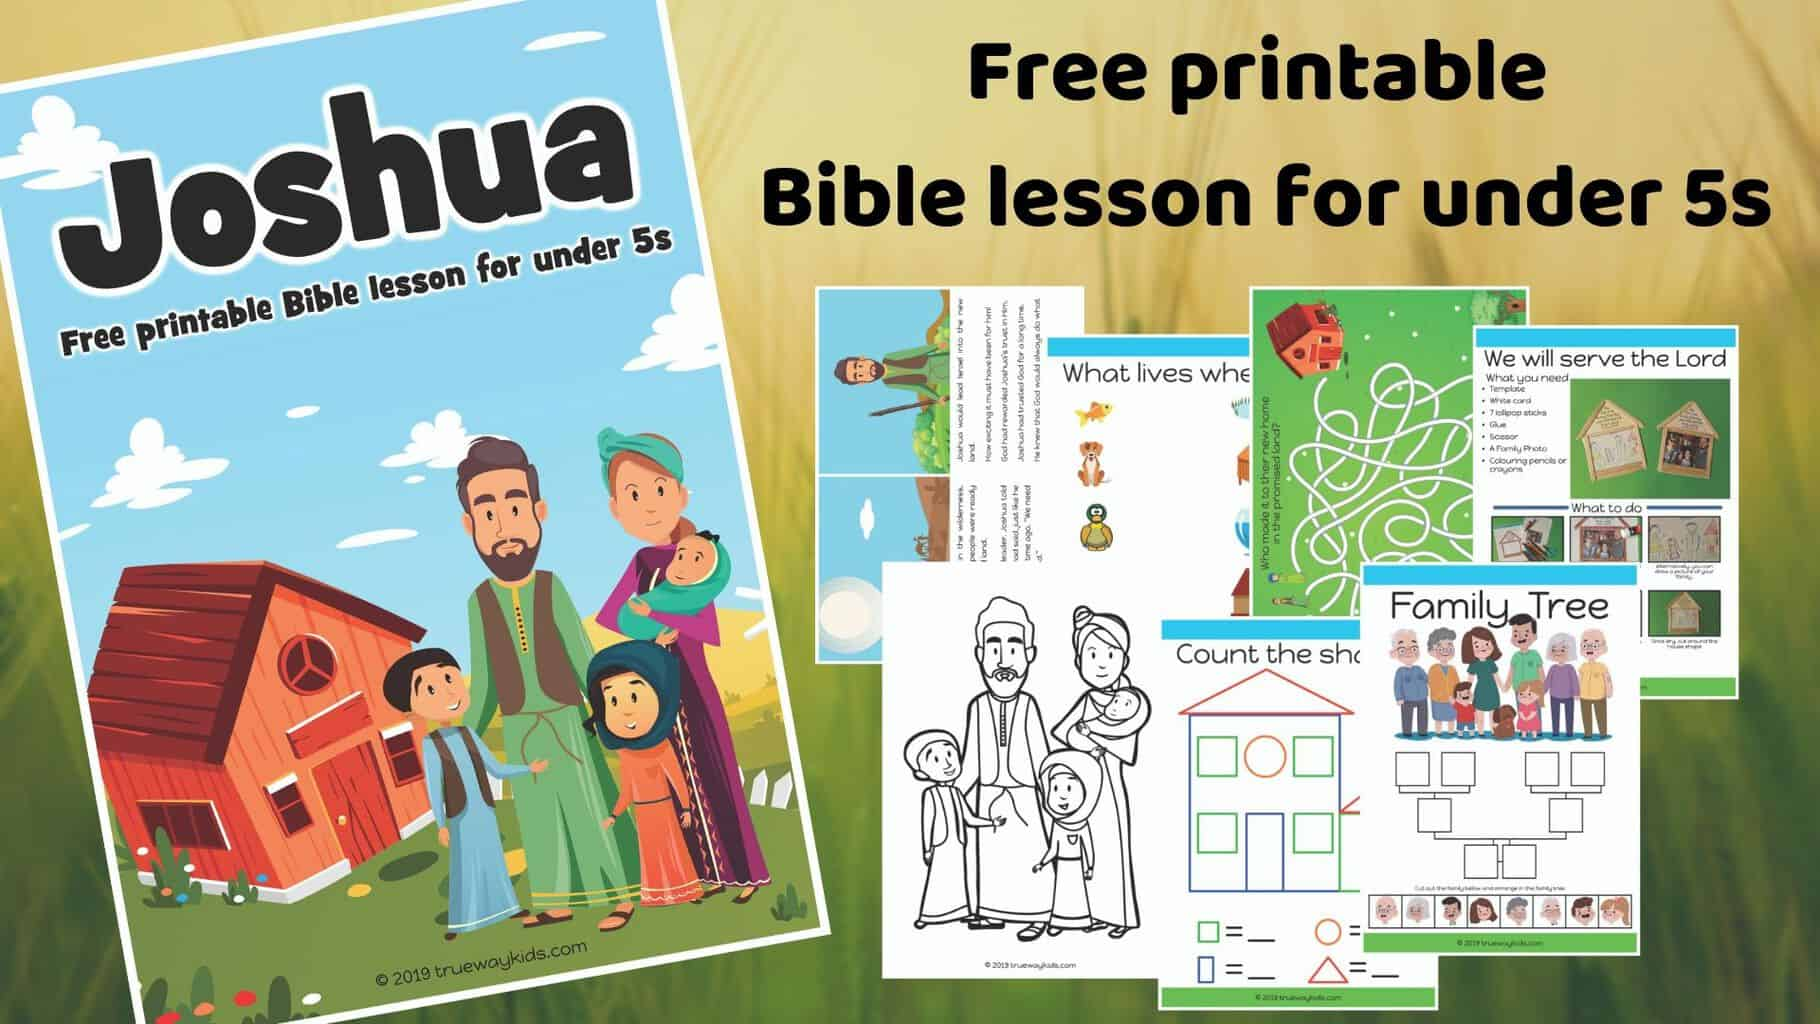 Joshua Bible lesson - Download - Trueway Kids